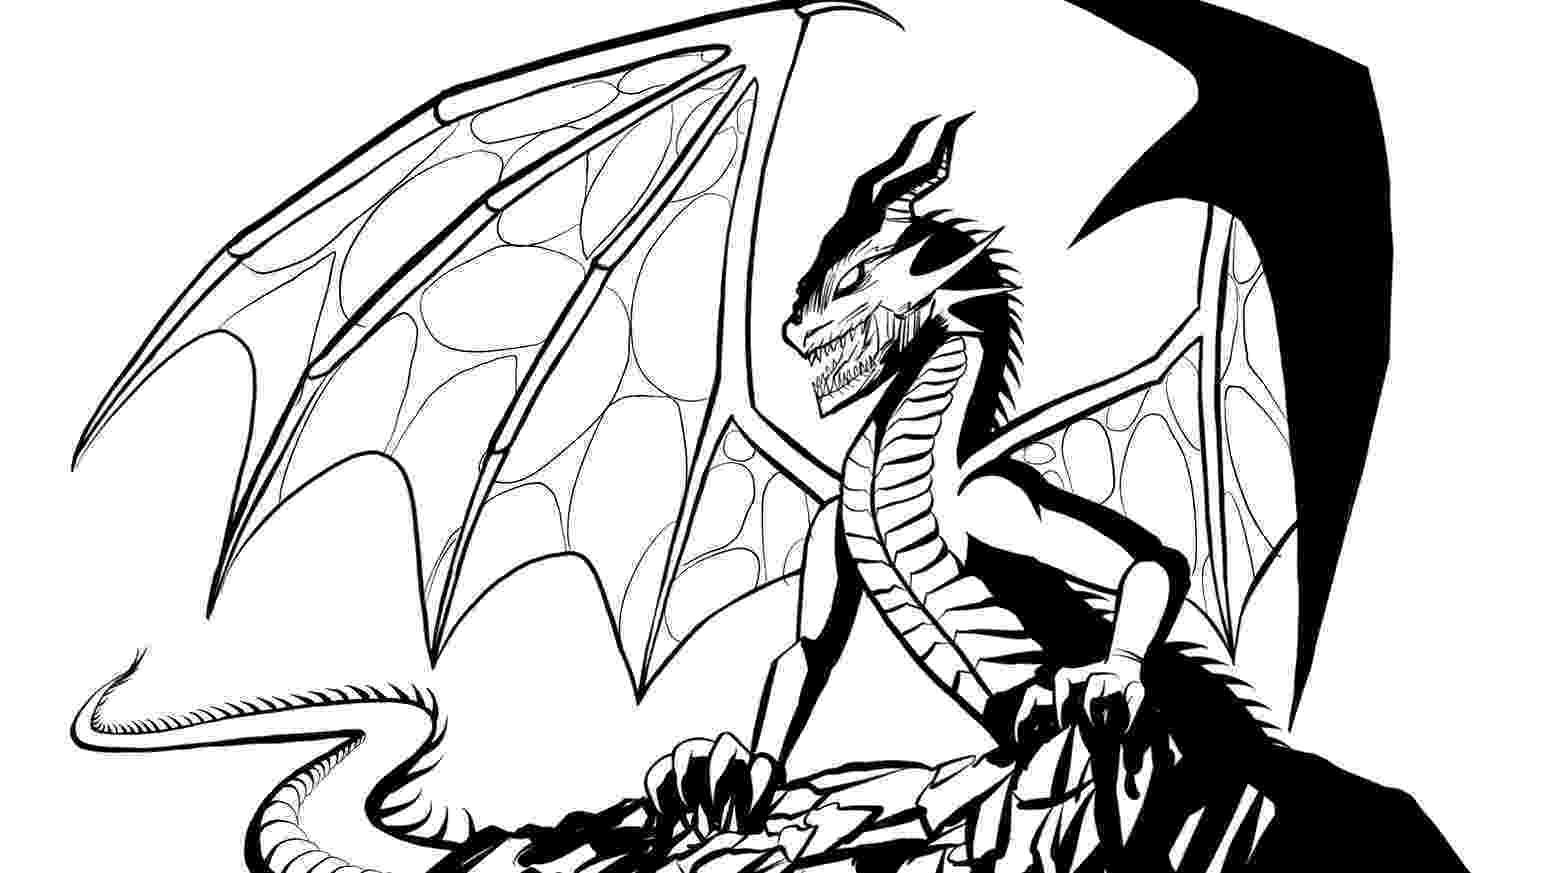 colouring pages welsh dragon dragon coloring pages coloringpages1001com colouring pages dragon welsh